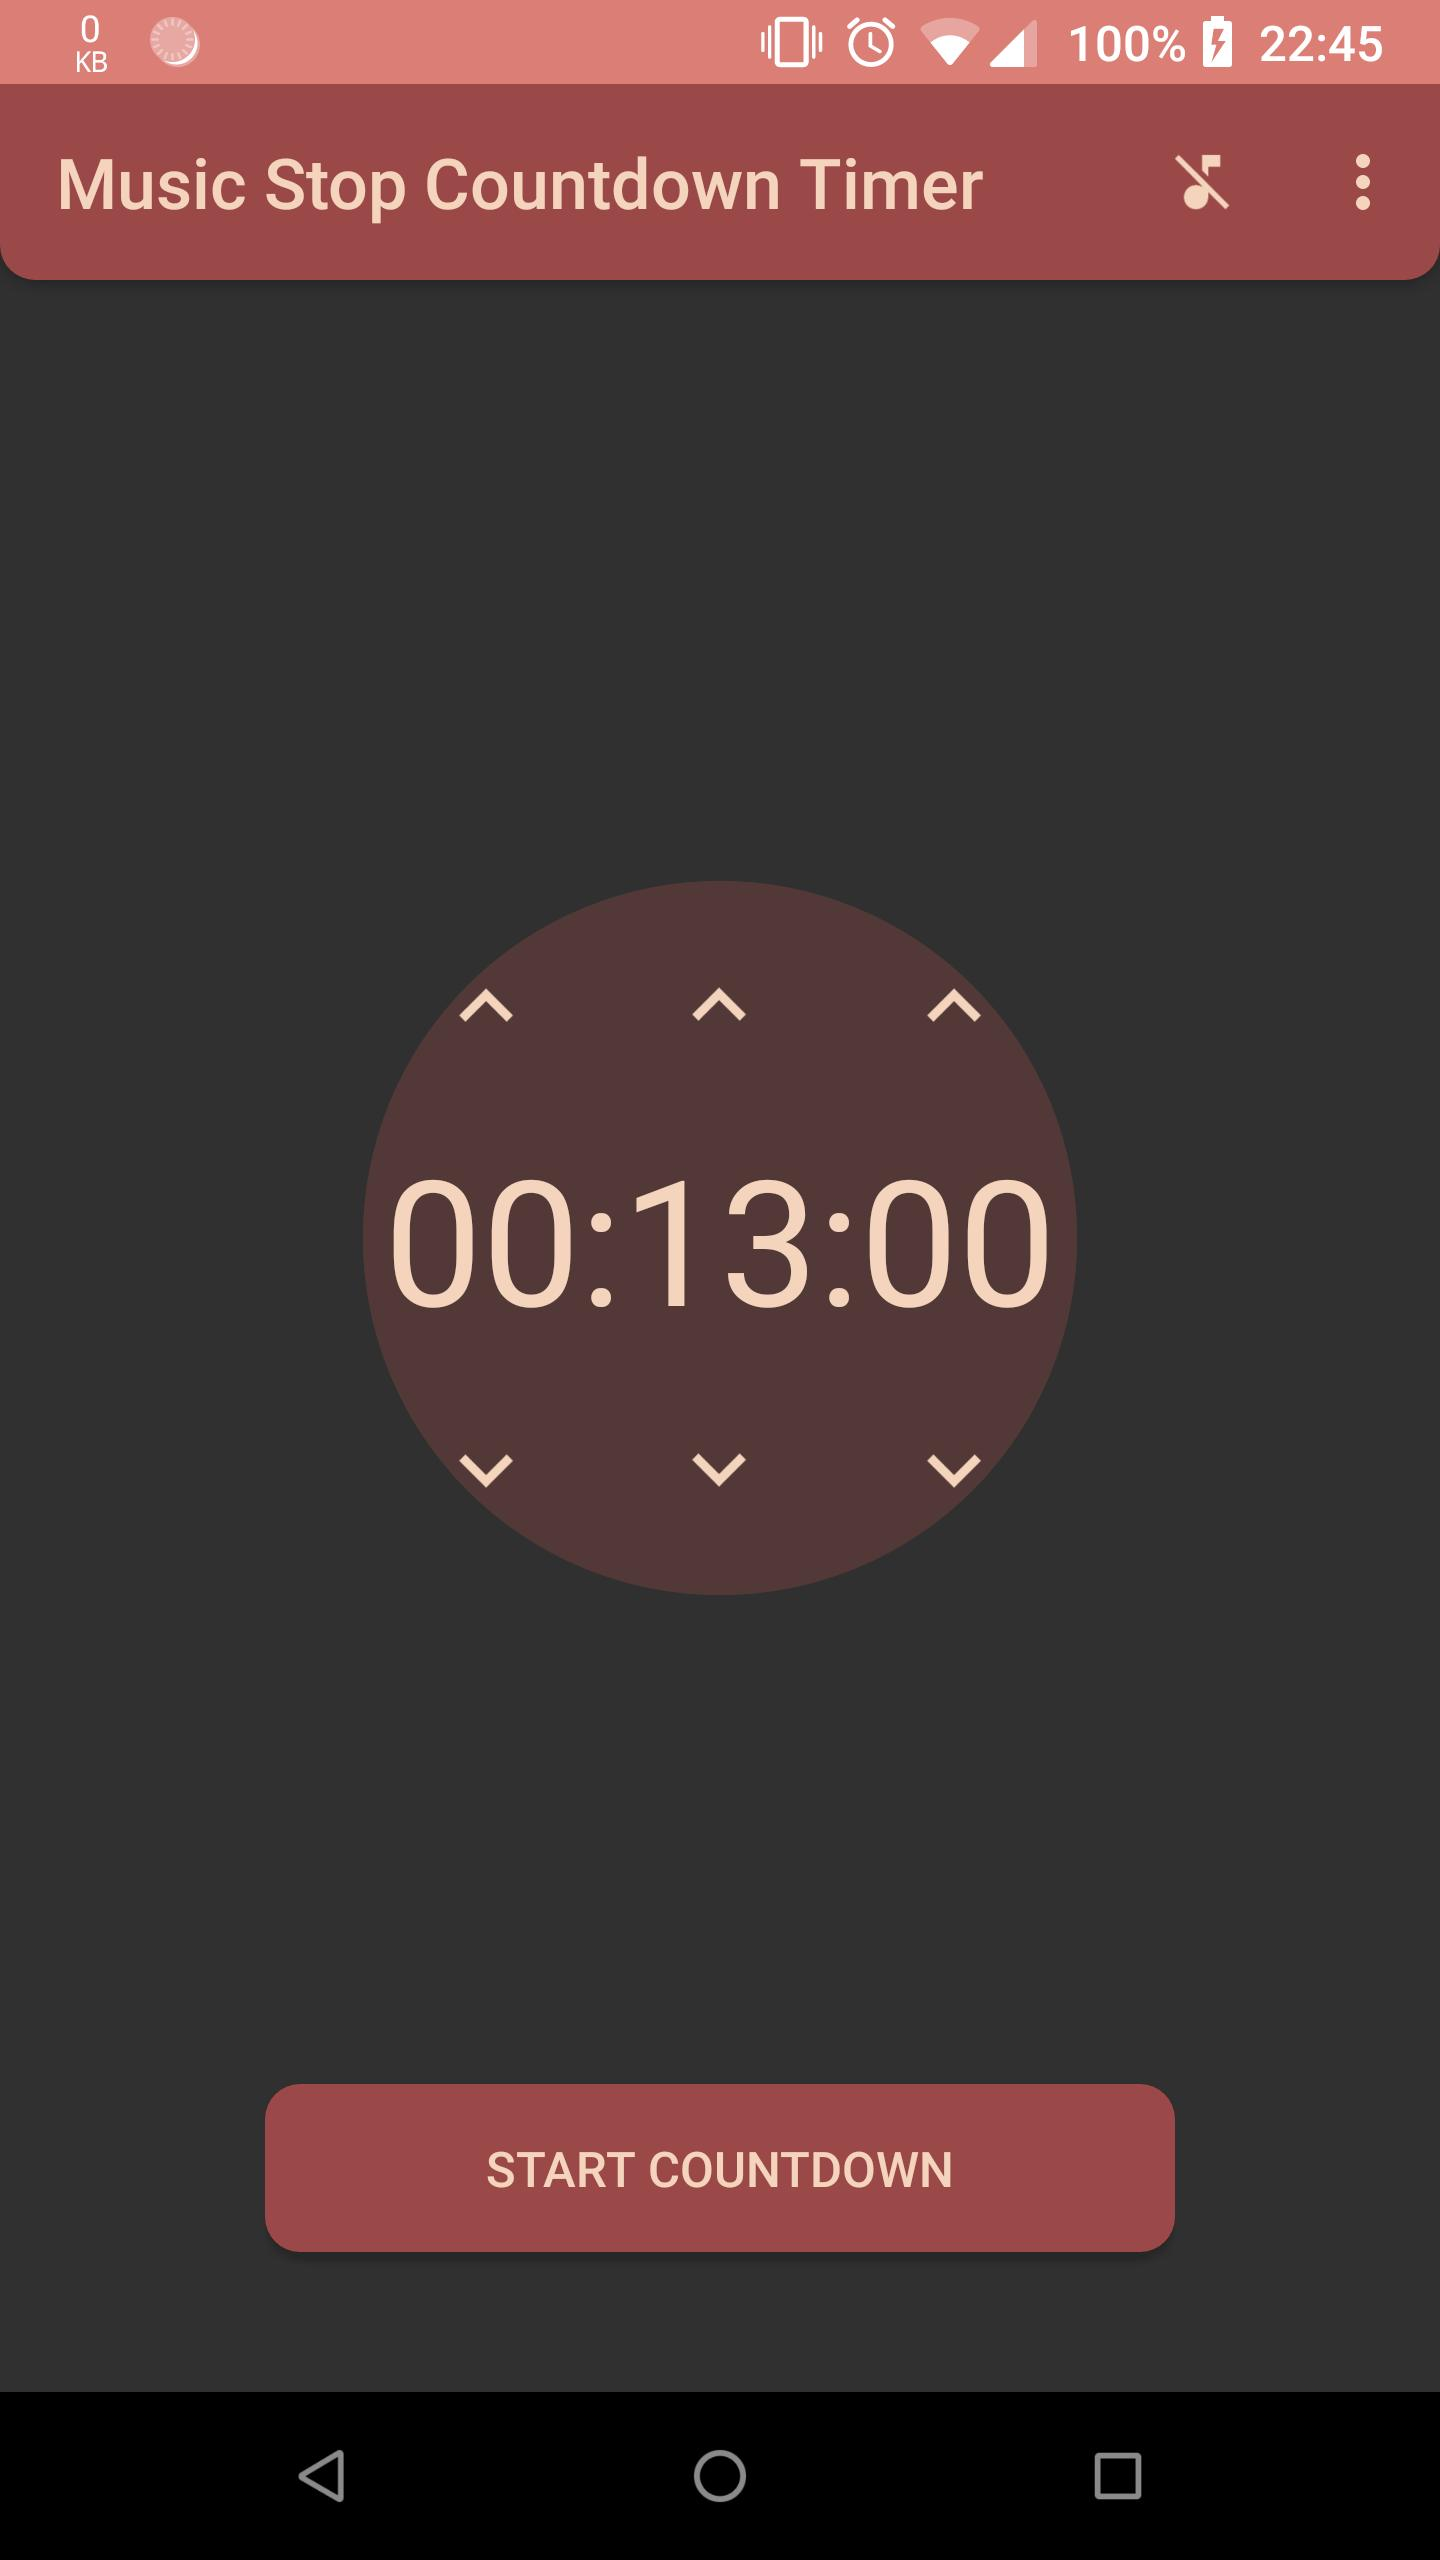 Music Stop Countdown Timer for Android - APK Download